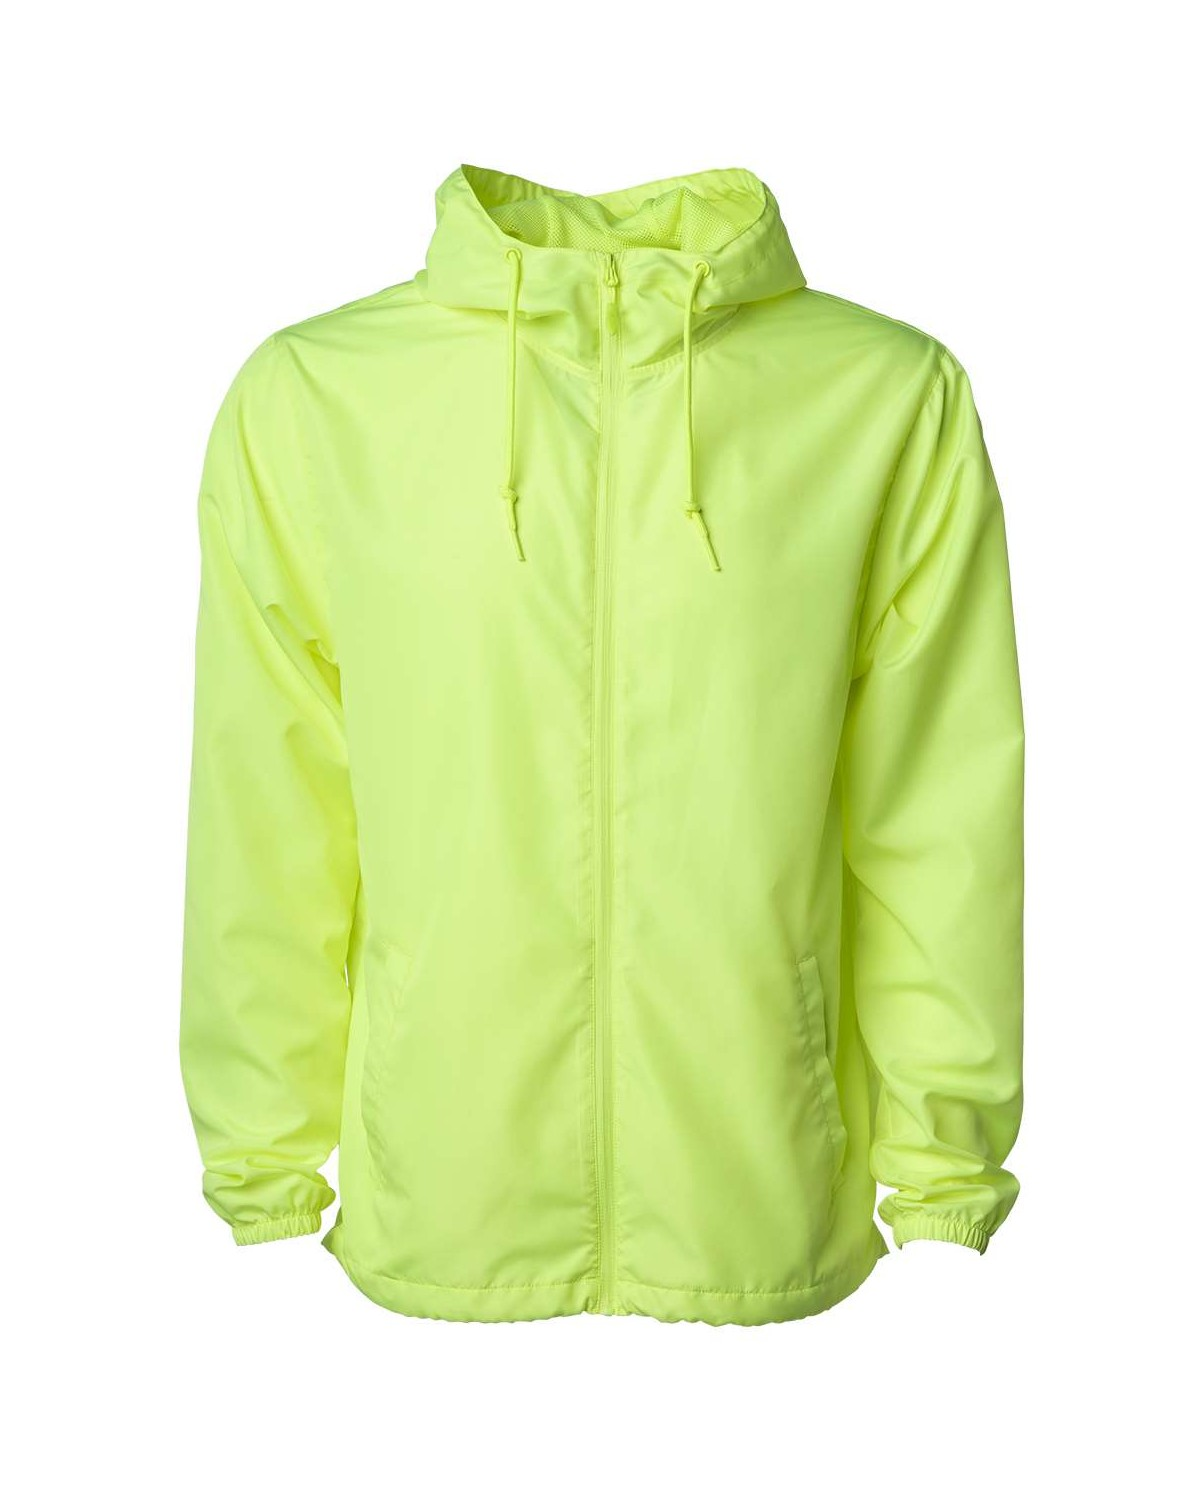 EXP54LWZ Independent Trading Company SAFETY YELLOW